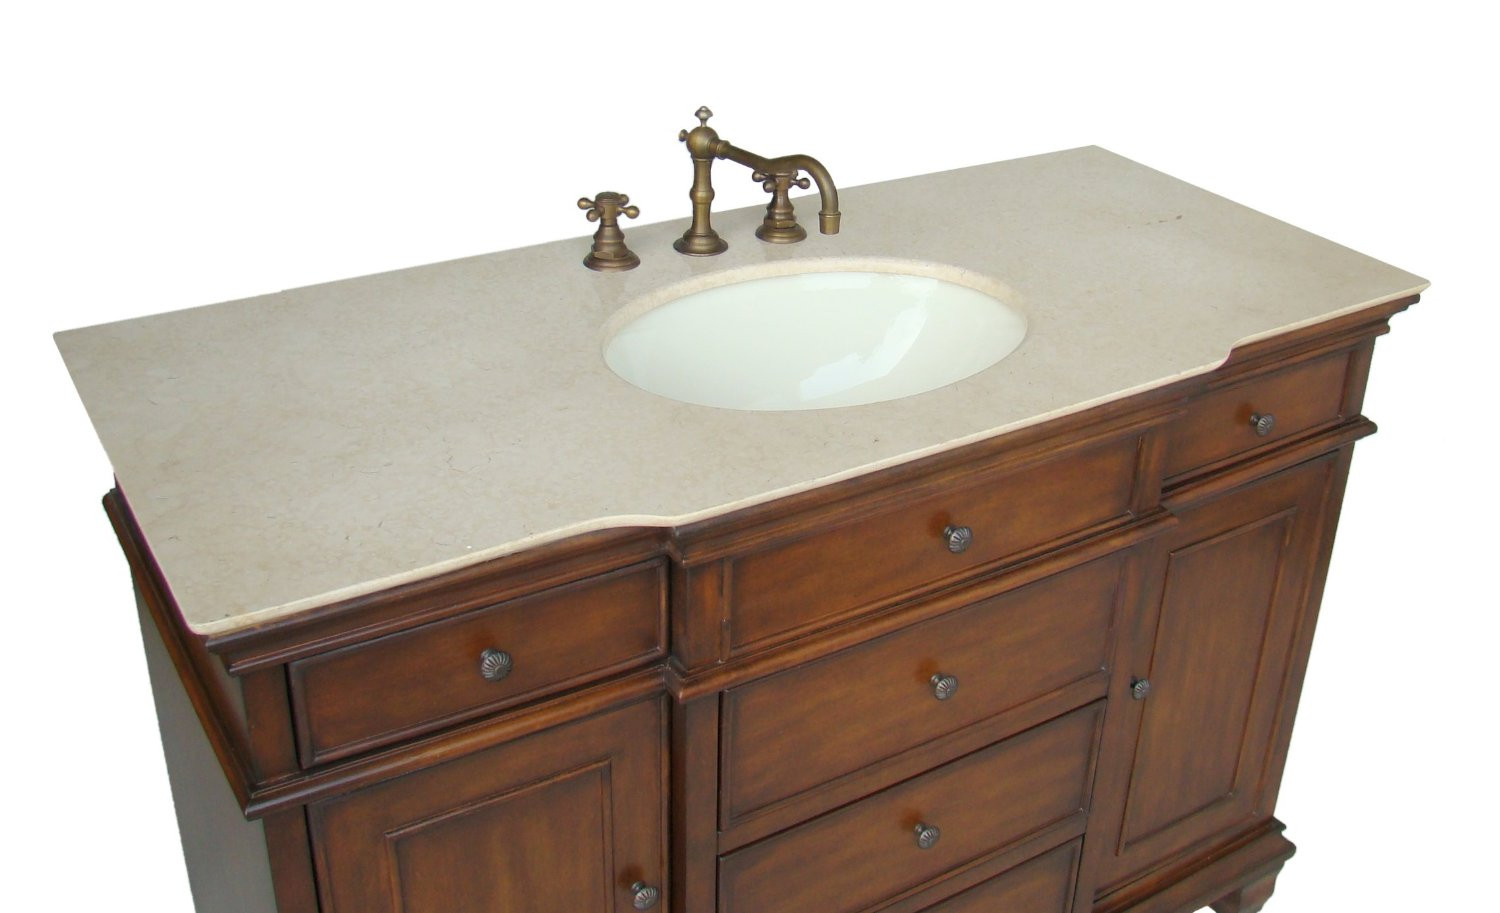 Modern Stunning Mission Style Bathroom Vanity - Neskowinland pertaining to Mission Style Bathroom Vanity